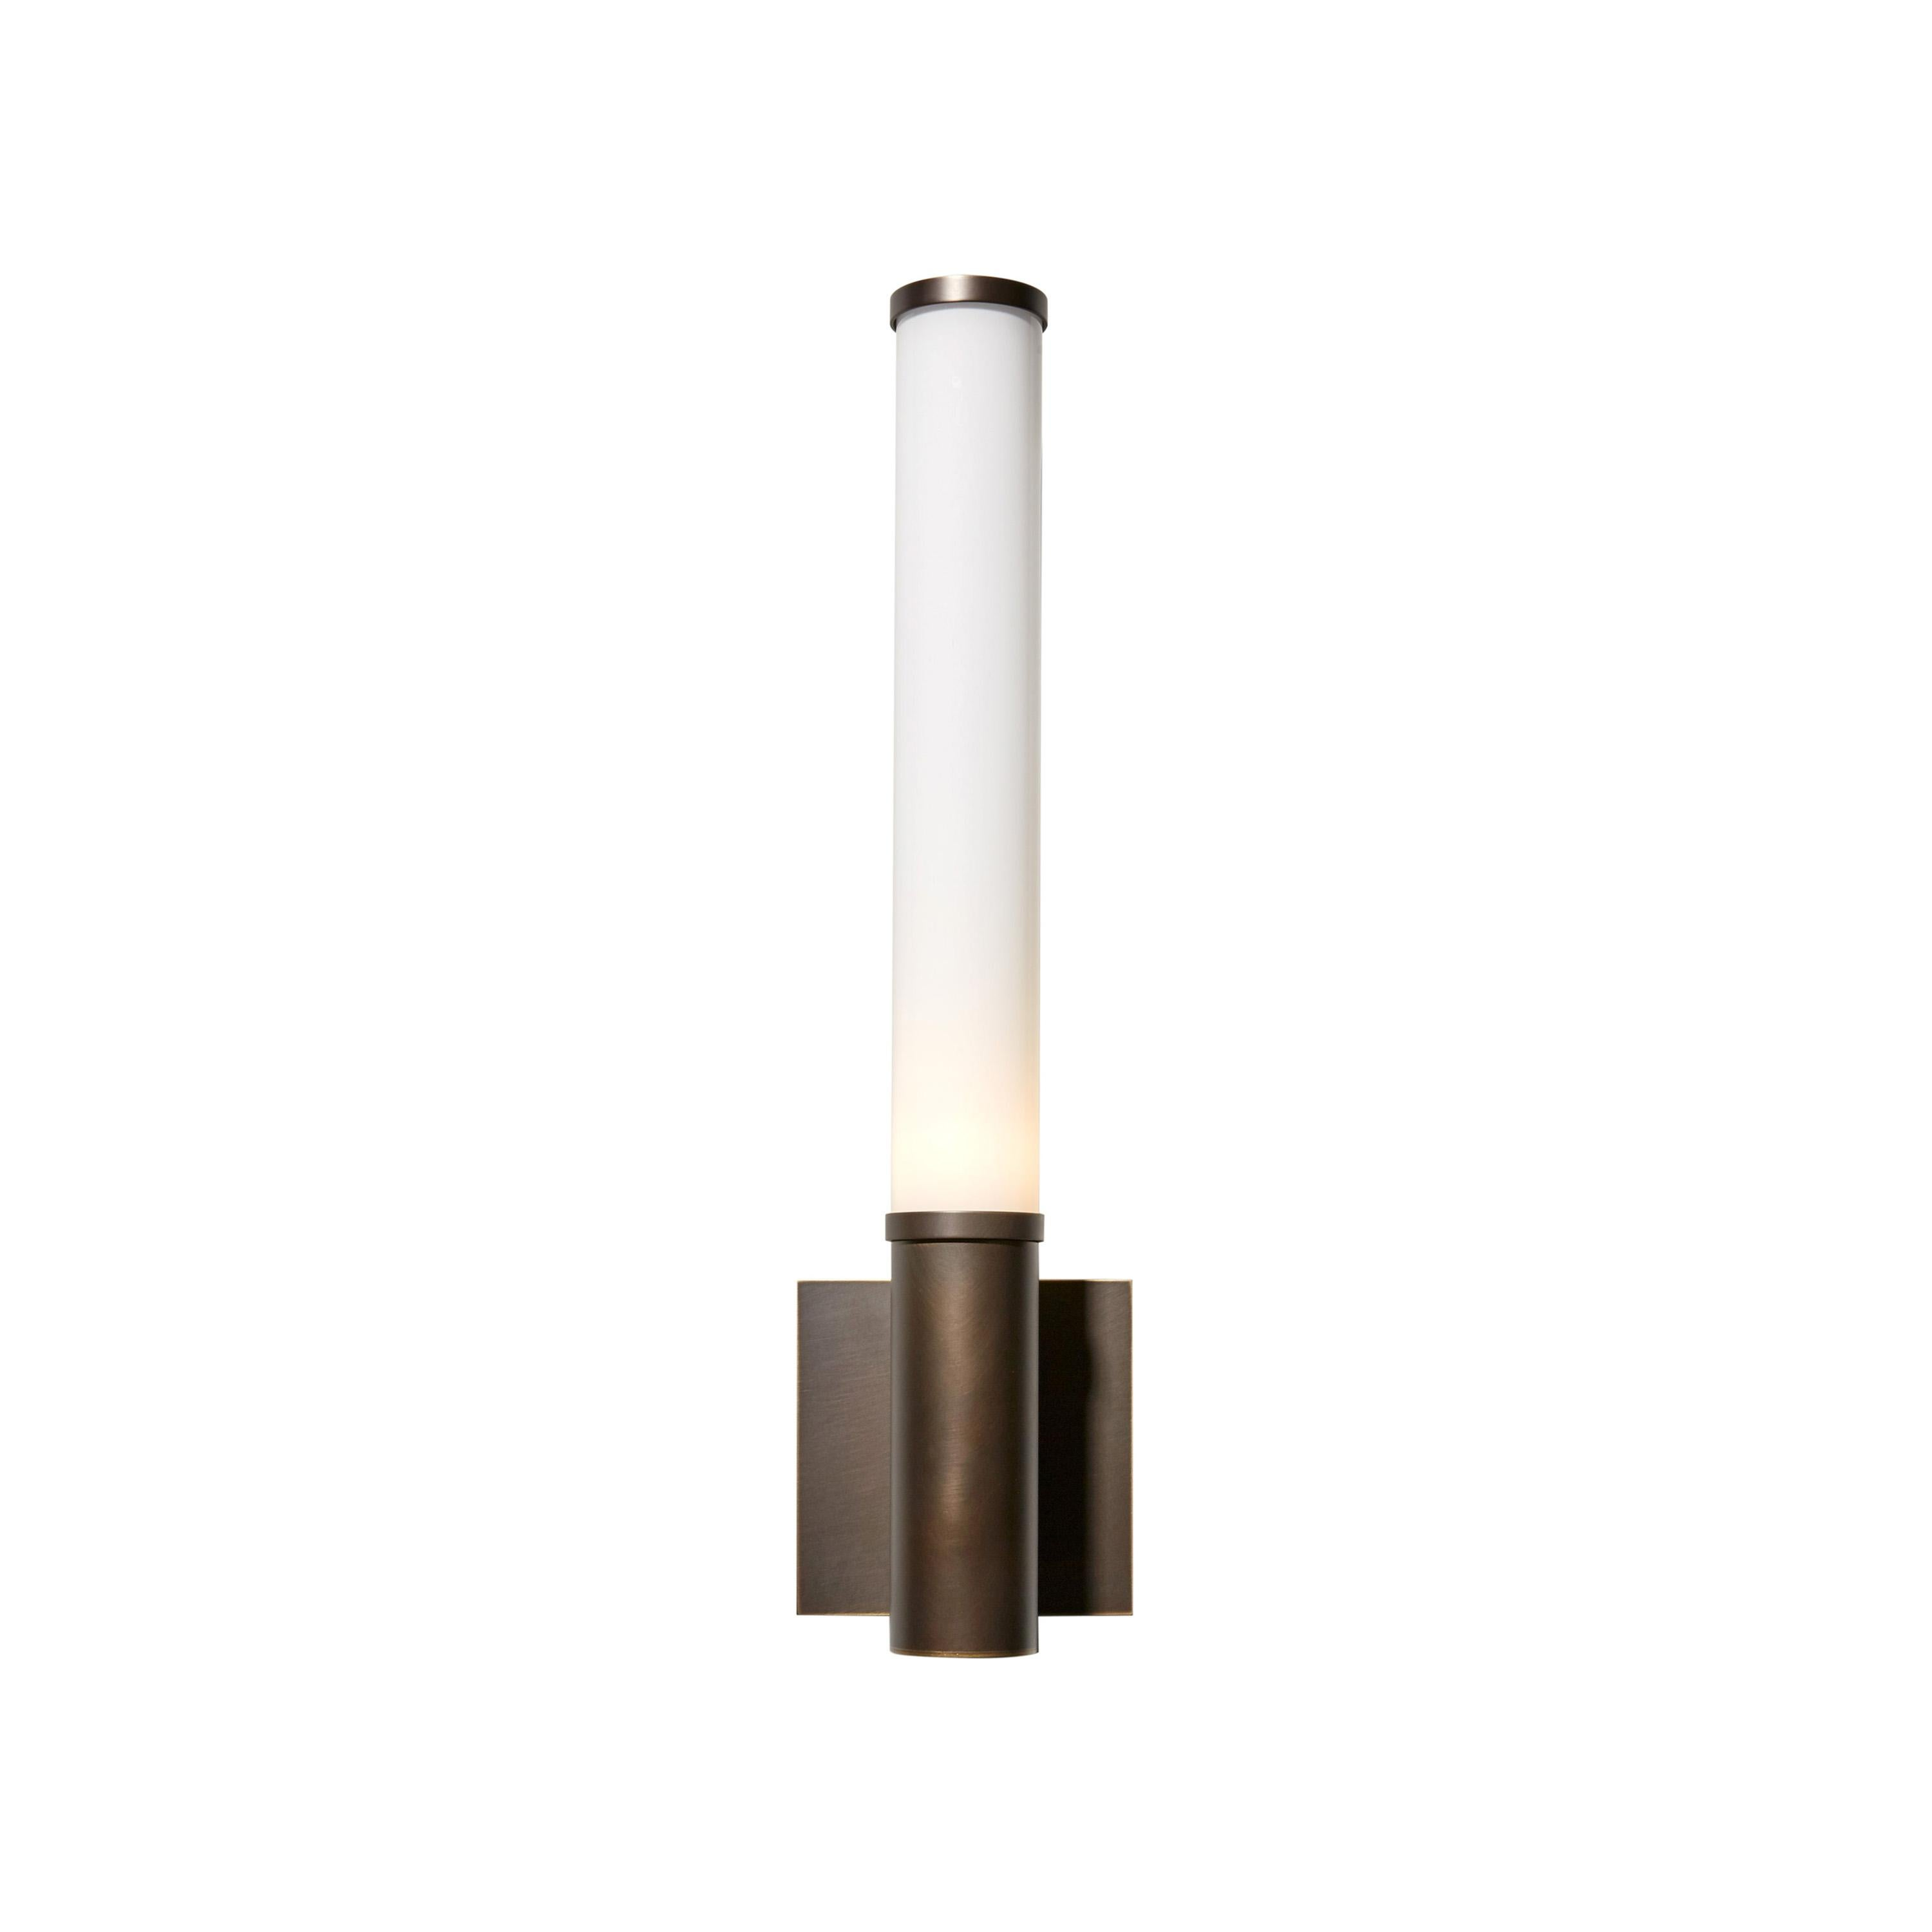 VeniceM Root One Wall Light in Burnished Brass by Massimo Tonetto